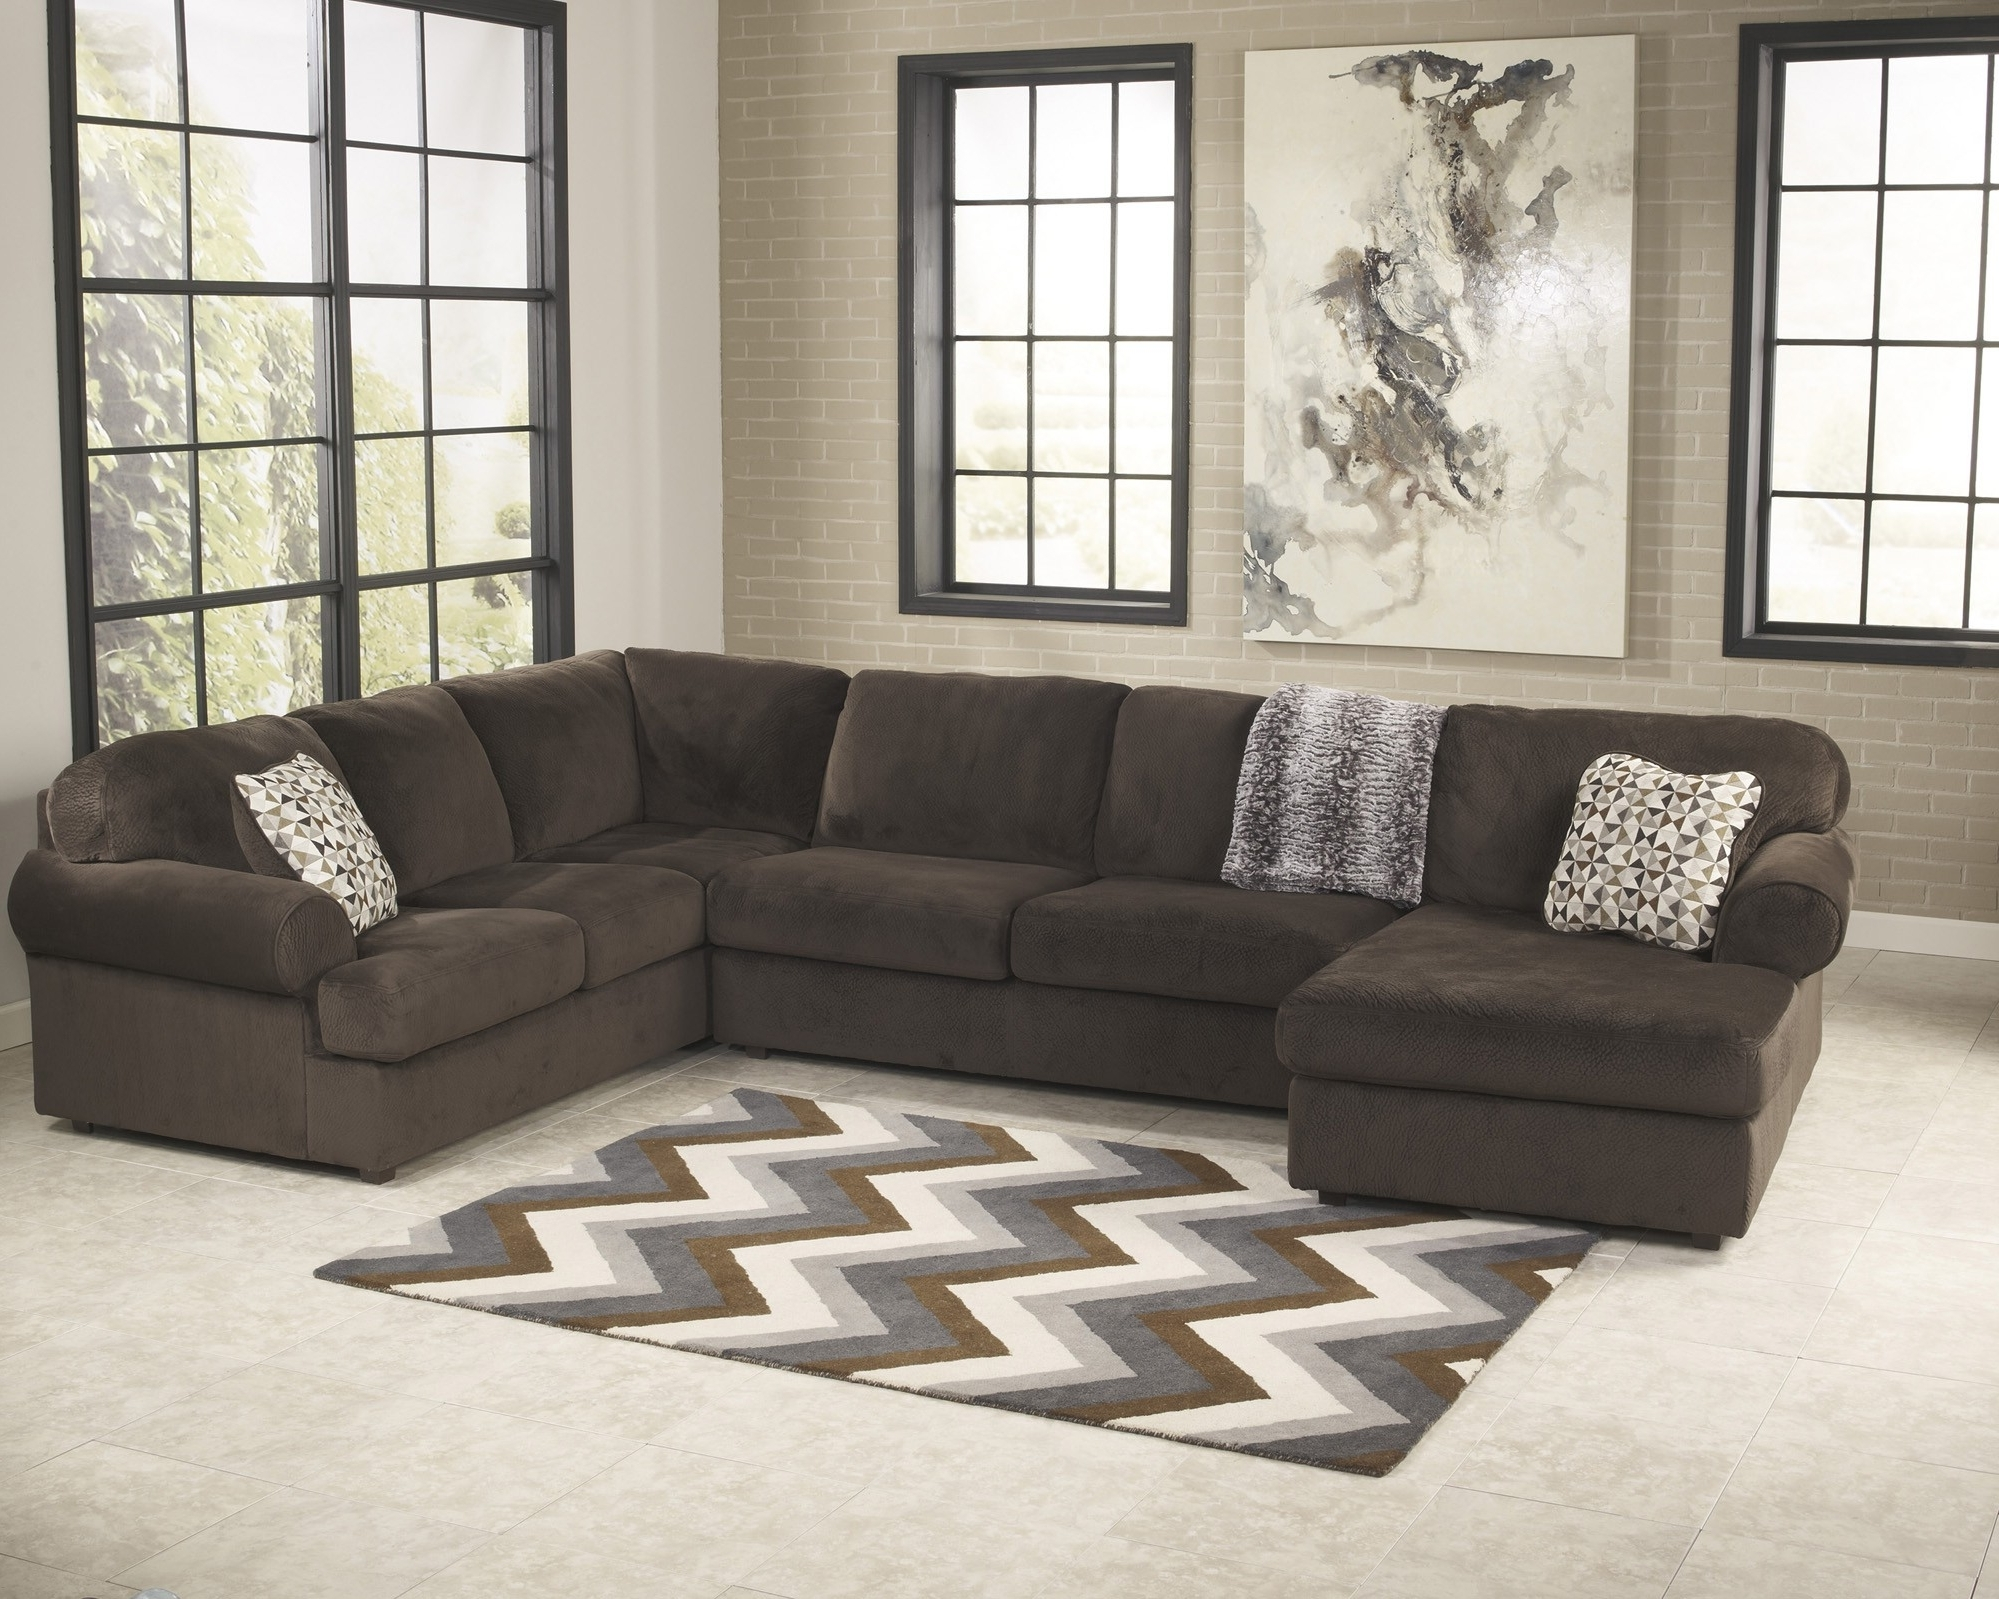 Jessa Place Chocolate 3-Piece Sectional Sofa For $790.00 with regard to Best and Newest 3 Piece Sectional Sofas With Chaise